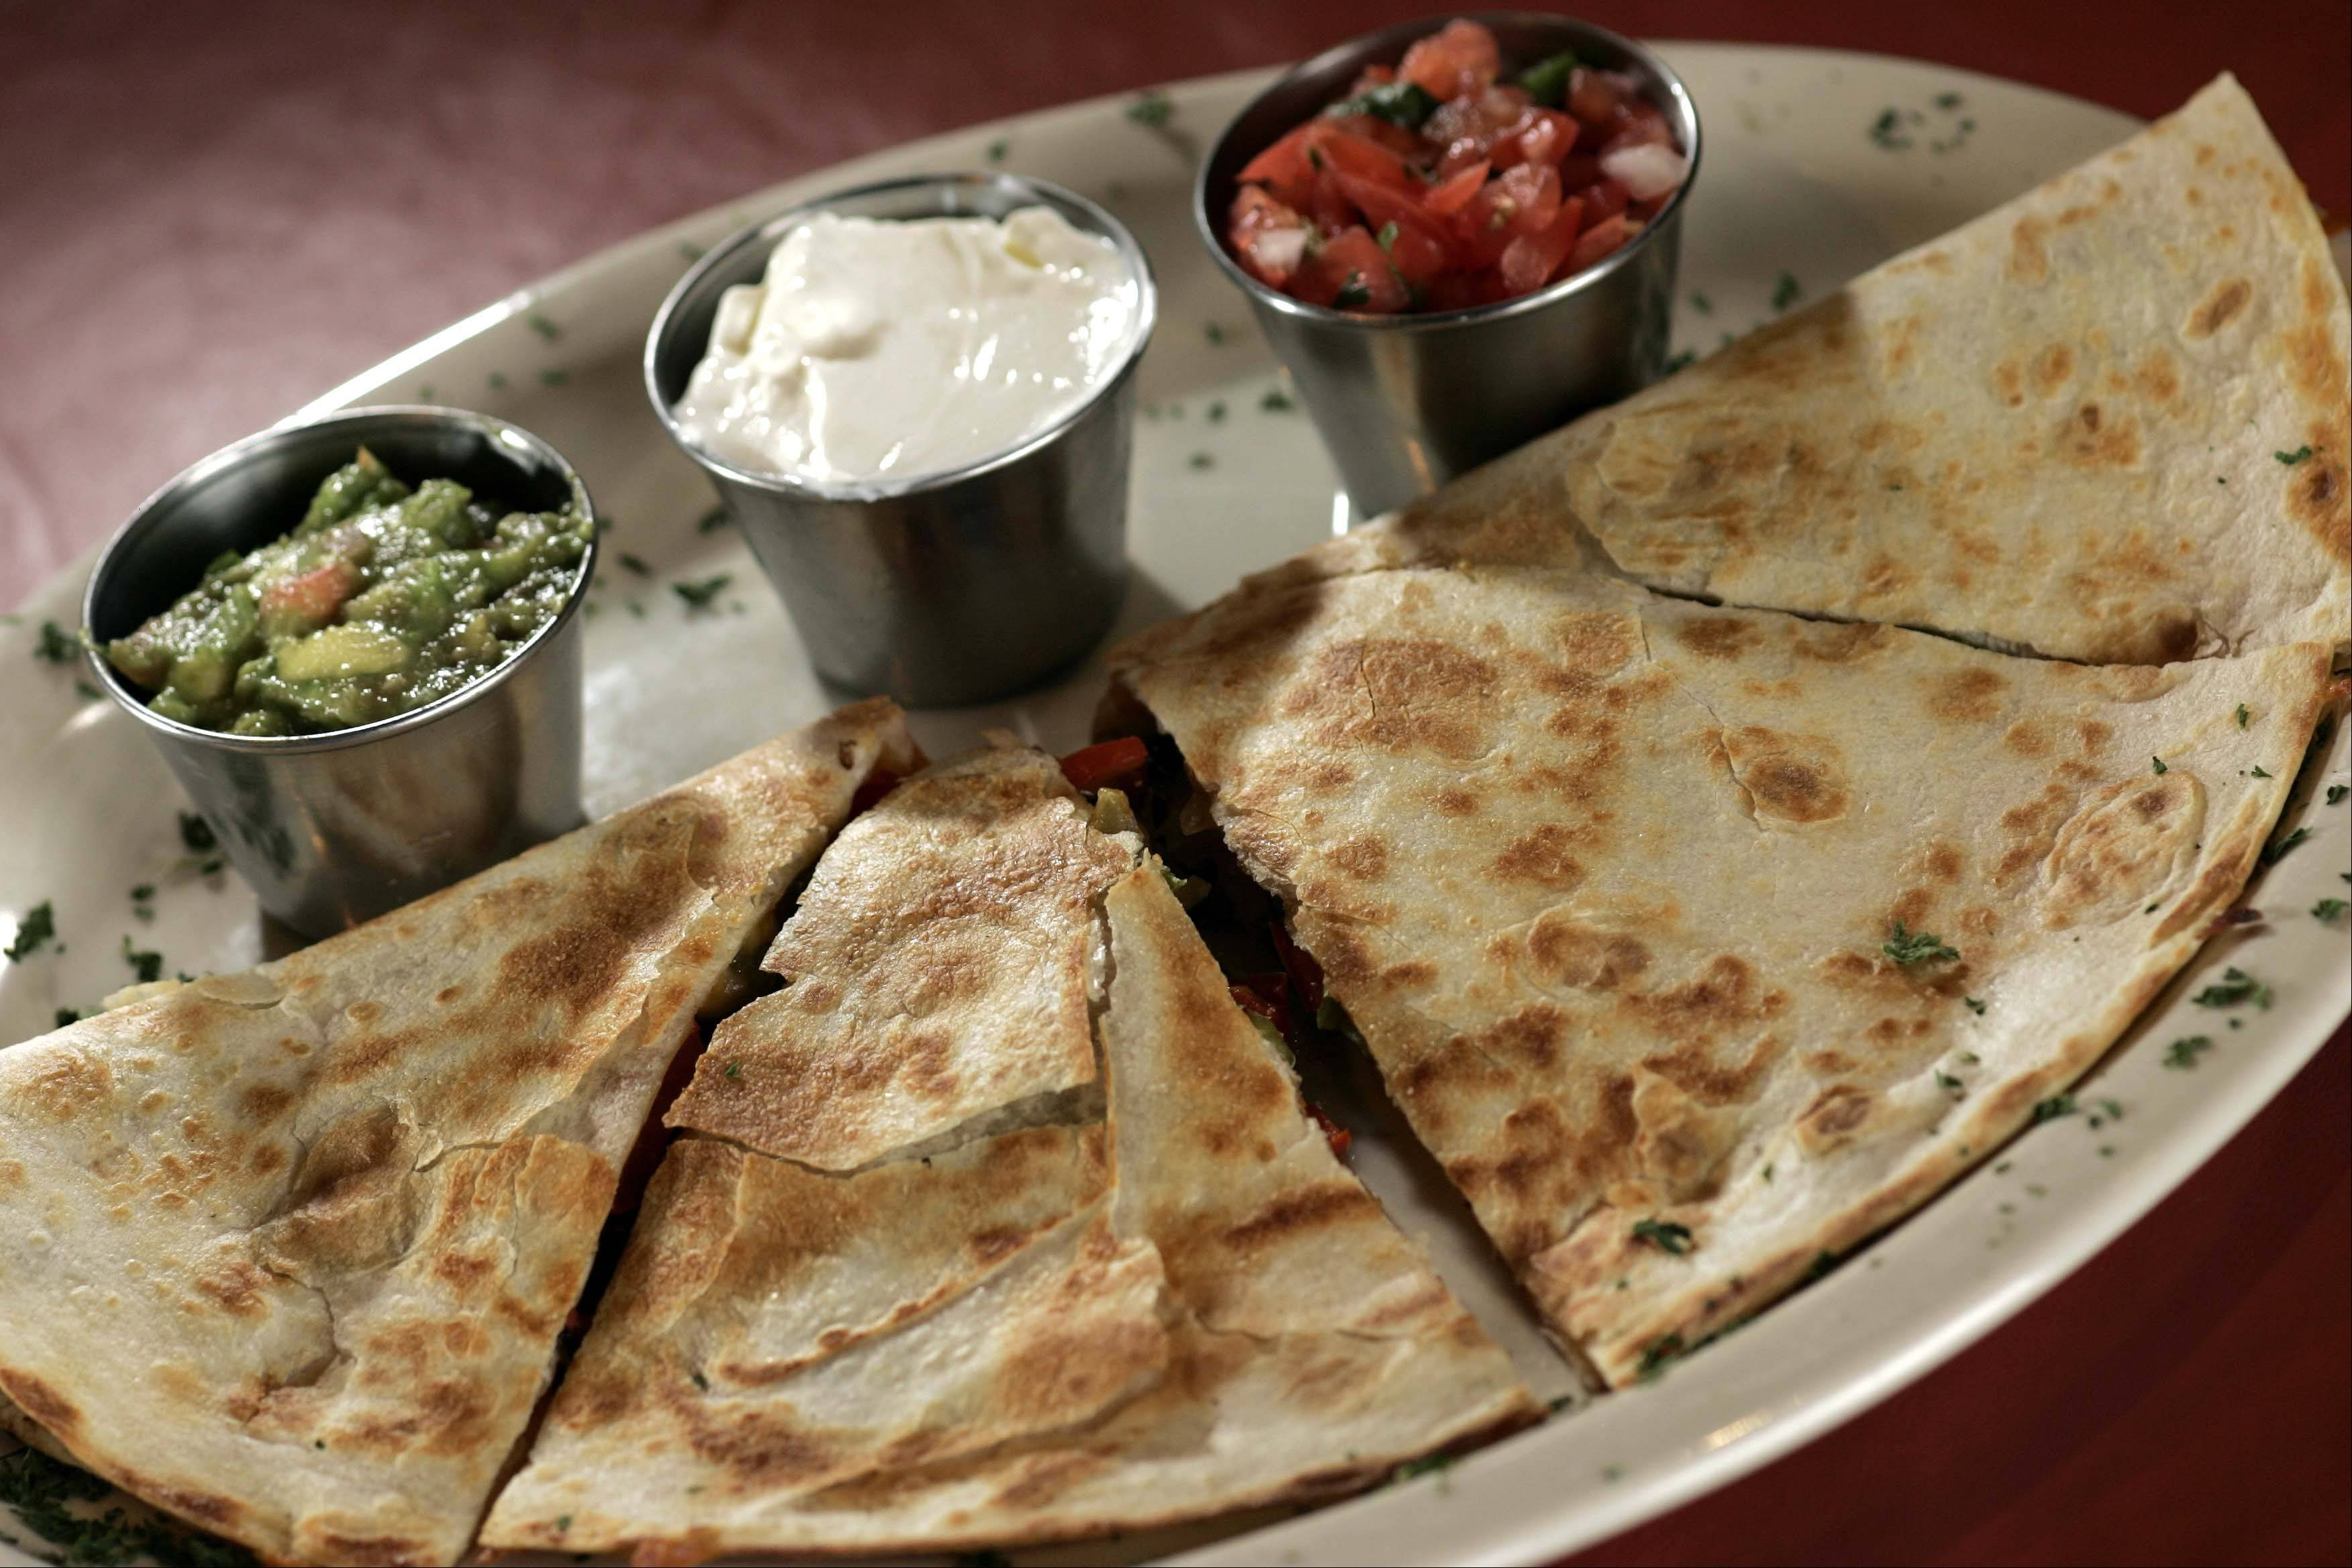 Quesadillas draw extra flavor from sides of guacamole, sour cream and pico de gallo at West End in West Dundee.